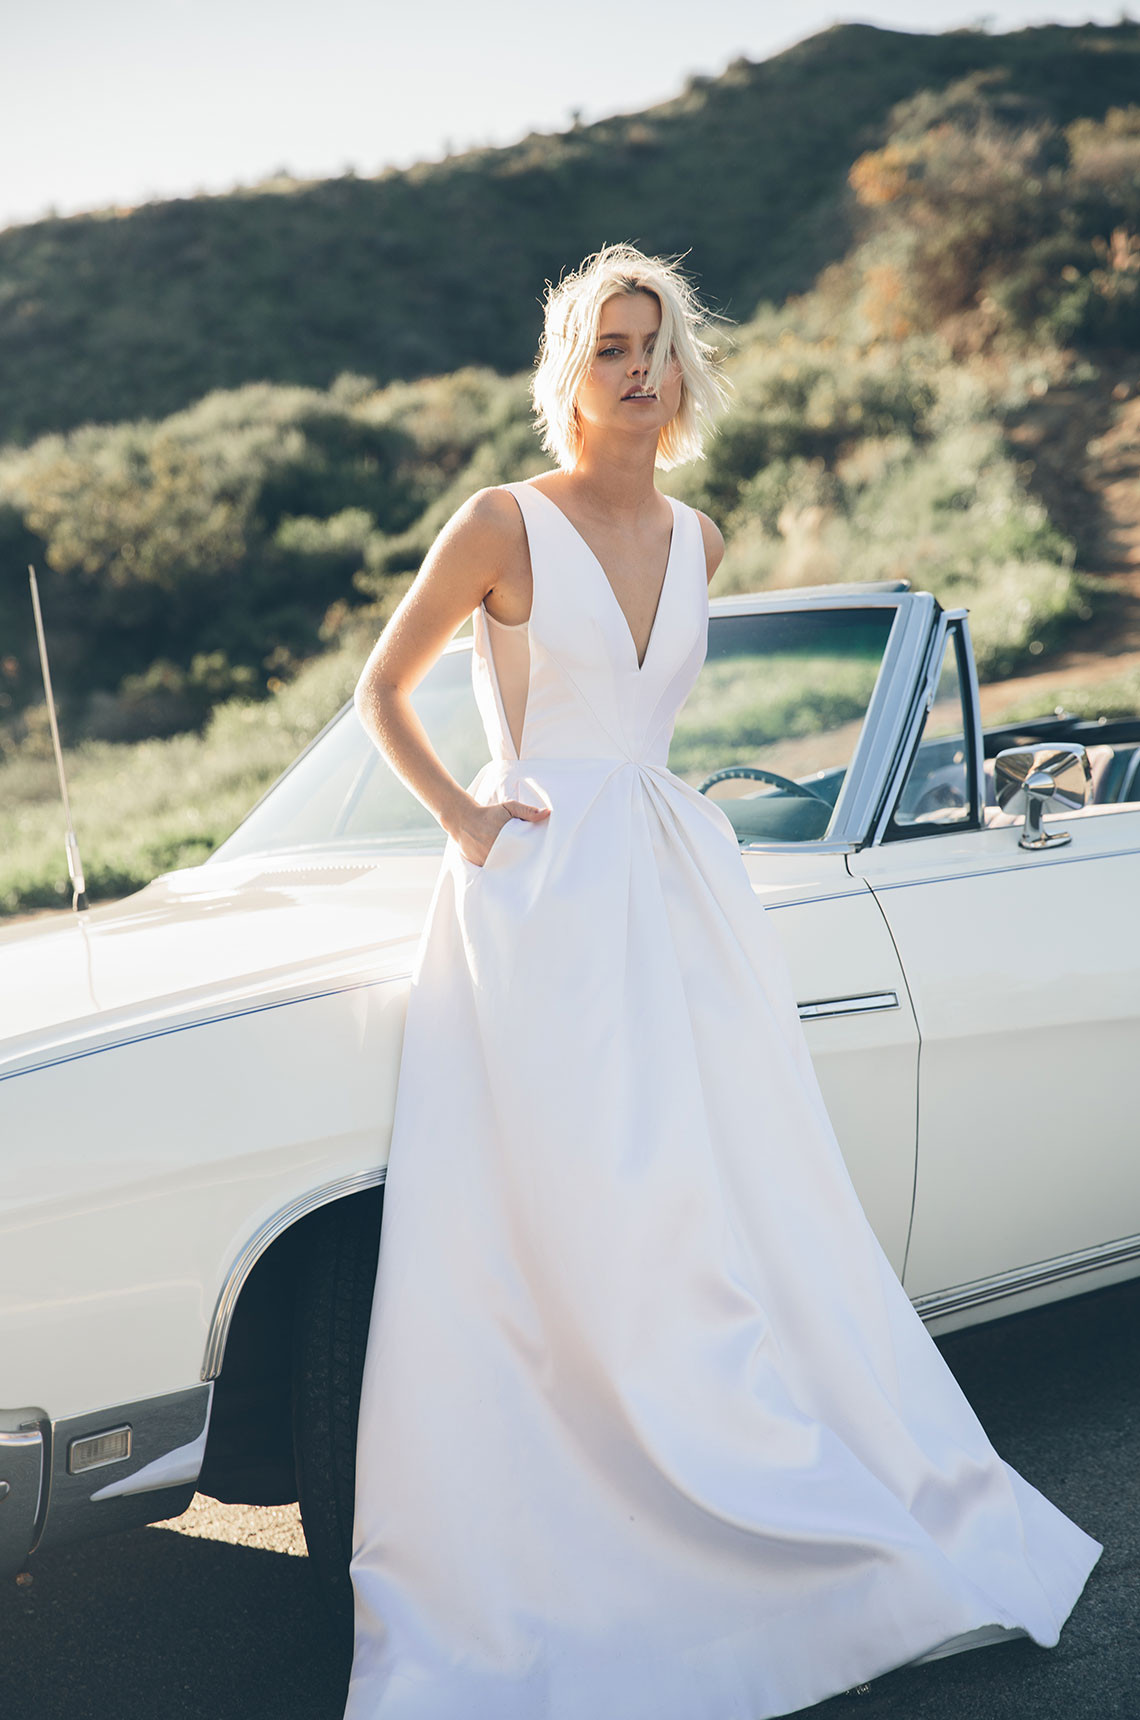 Floravere Custom Wedding Dress Company Is Like Seamless for Bridal ...